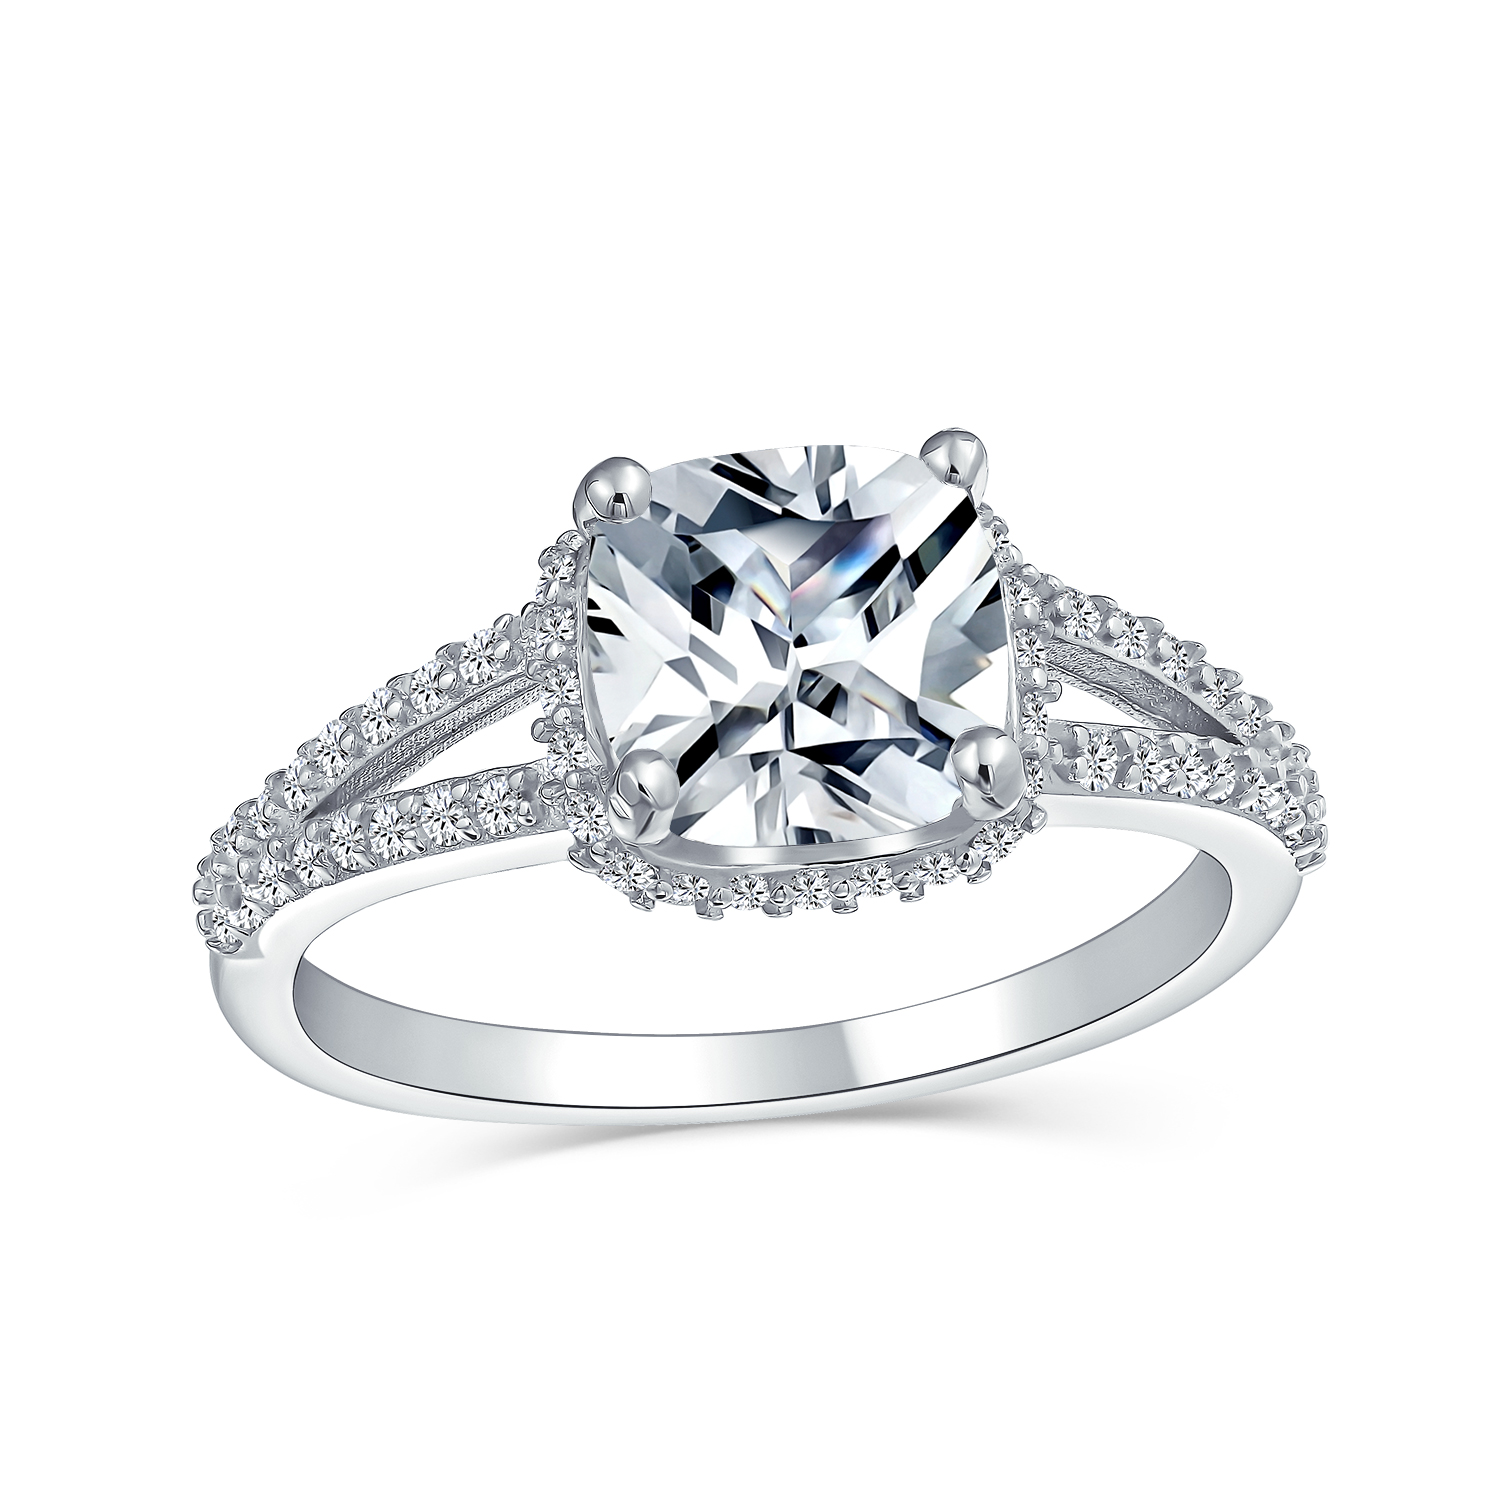 Ring Woman Engagement Love Diamond Women ring silver 925 wedding gifts gift for her jewelry charms Diamond accessories